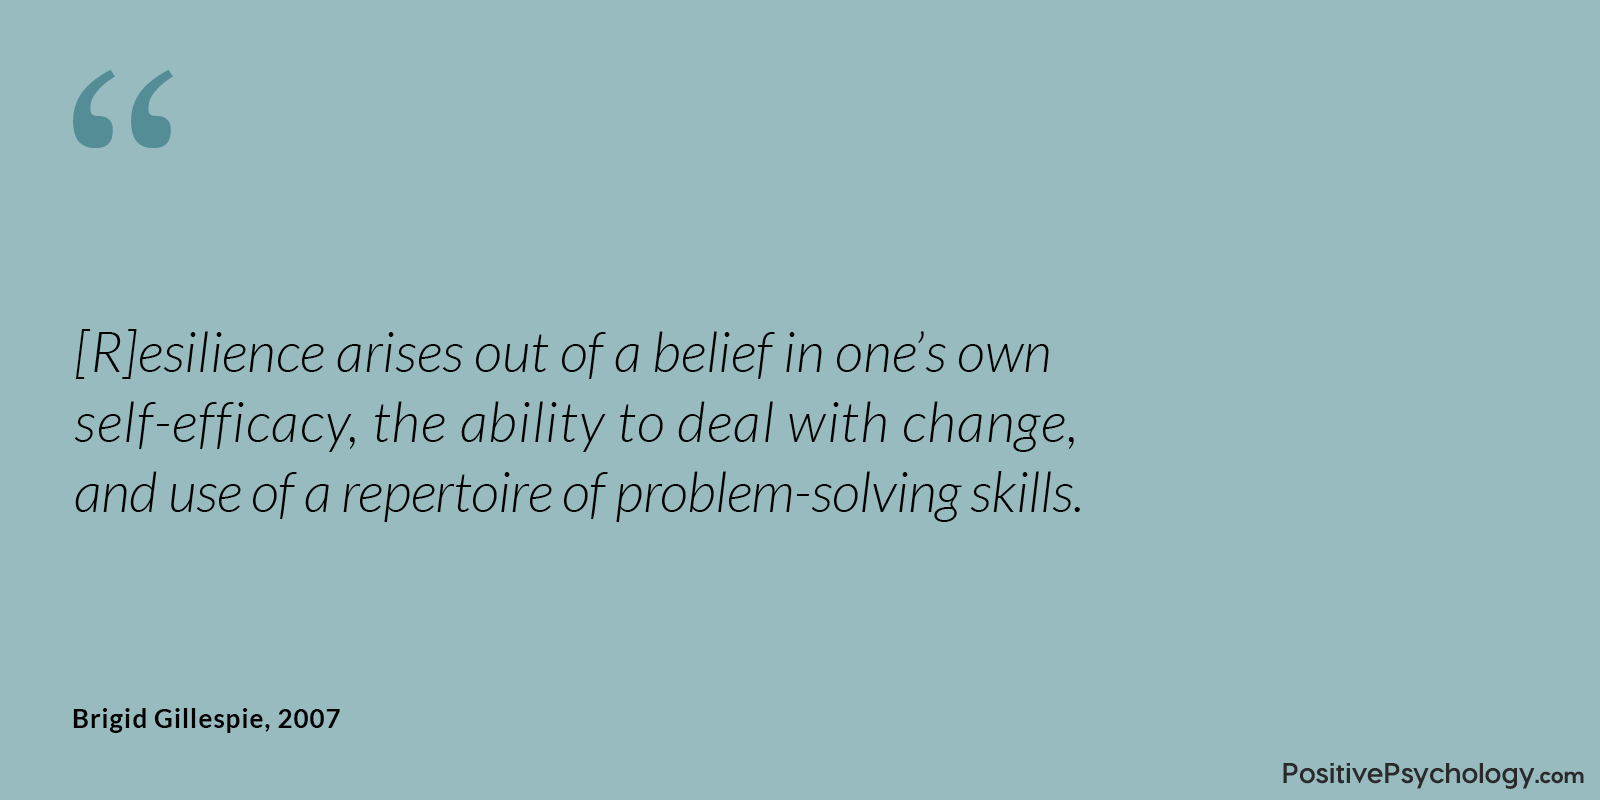 Gillespie and Colleagues Resilience Self-efficacy Belief Quote